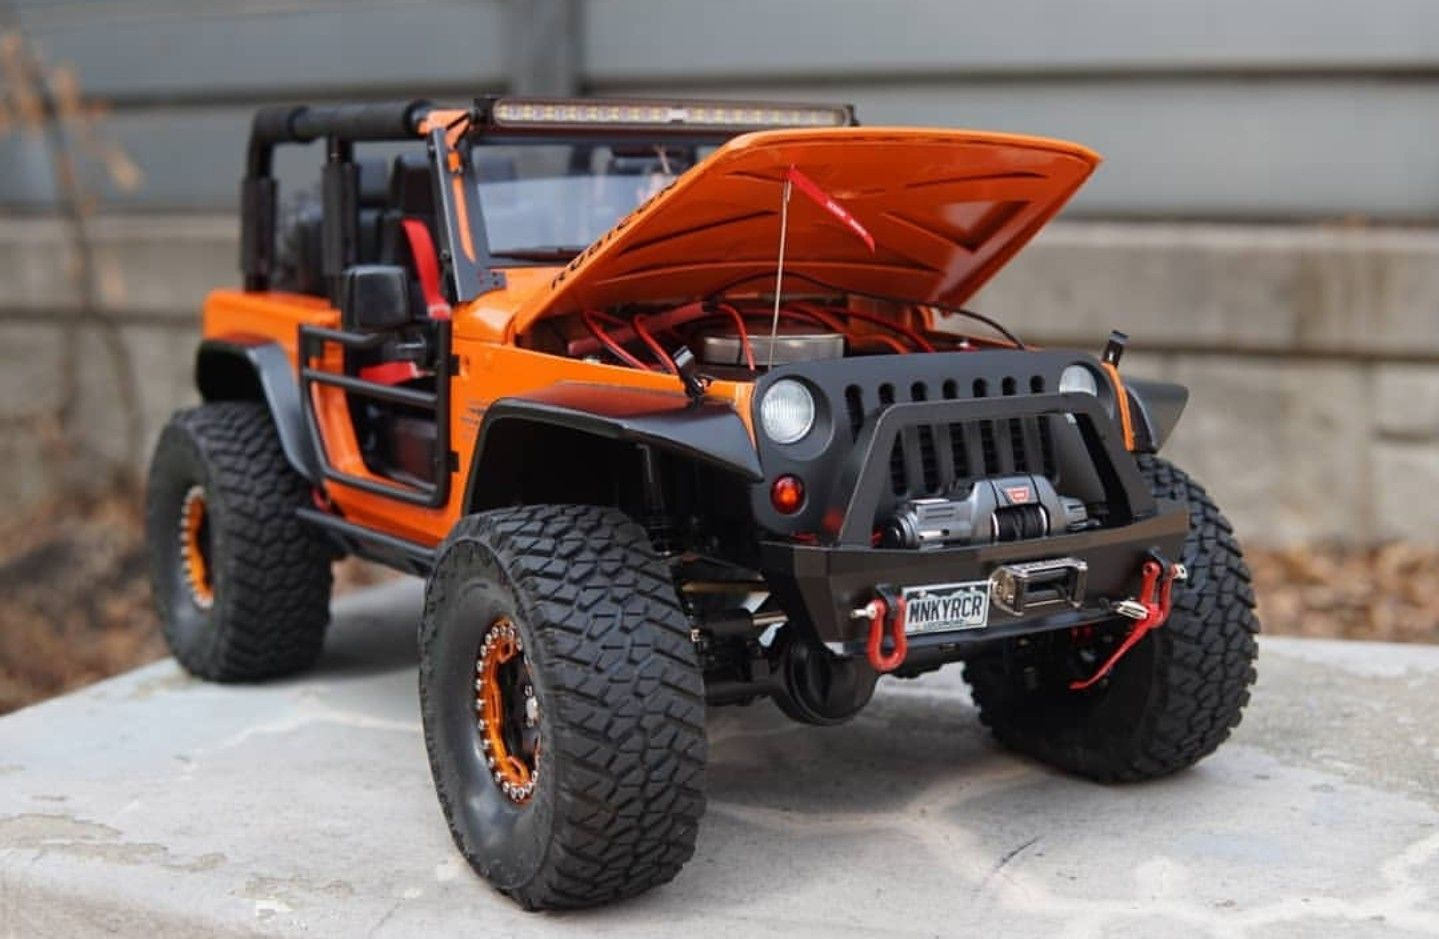 Pin by Malv on rc jeep ideas Rc cars, Rc jeep, Rc cars